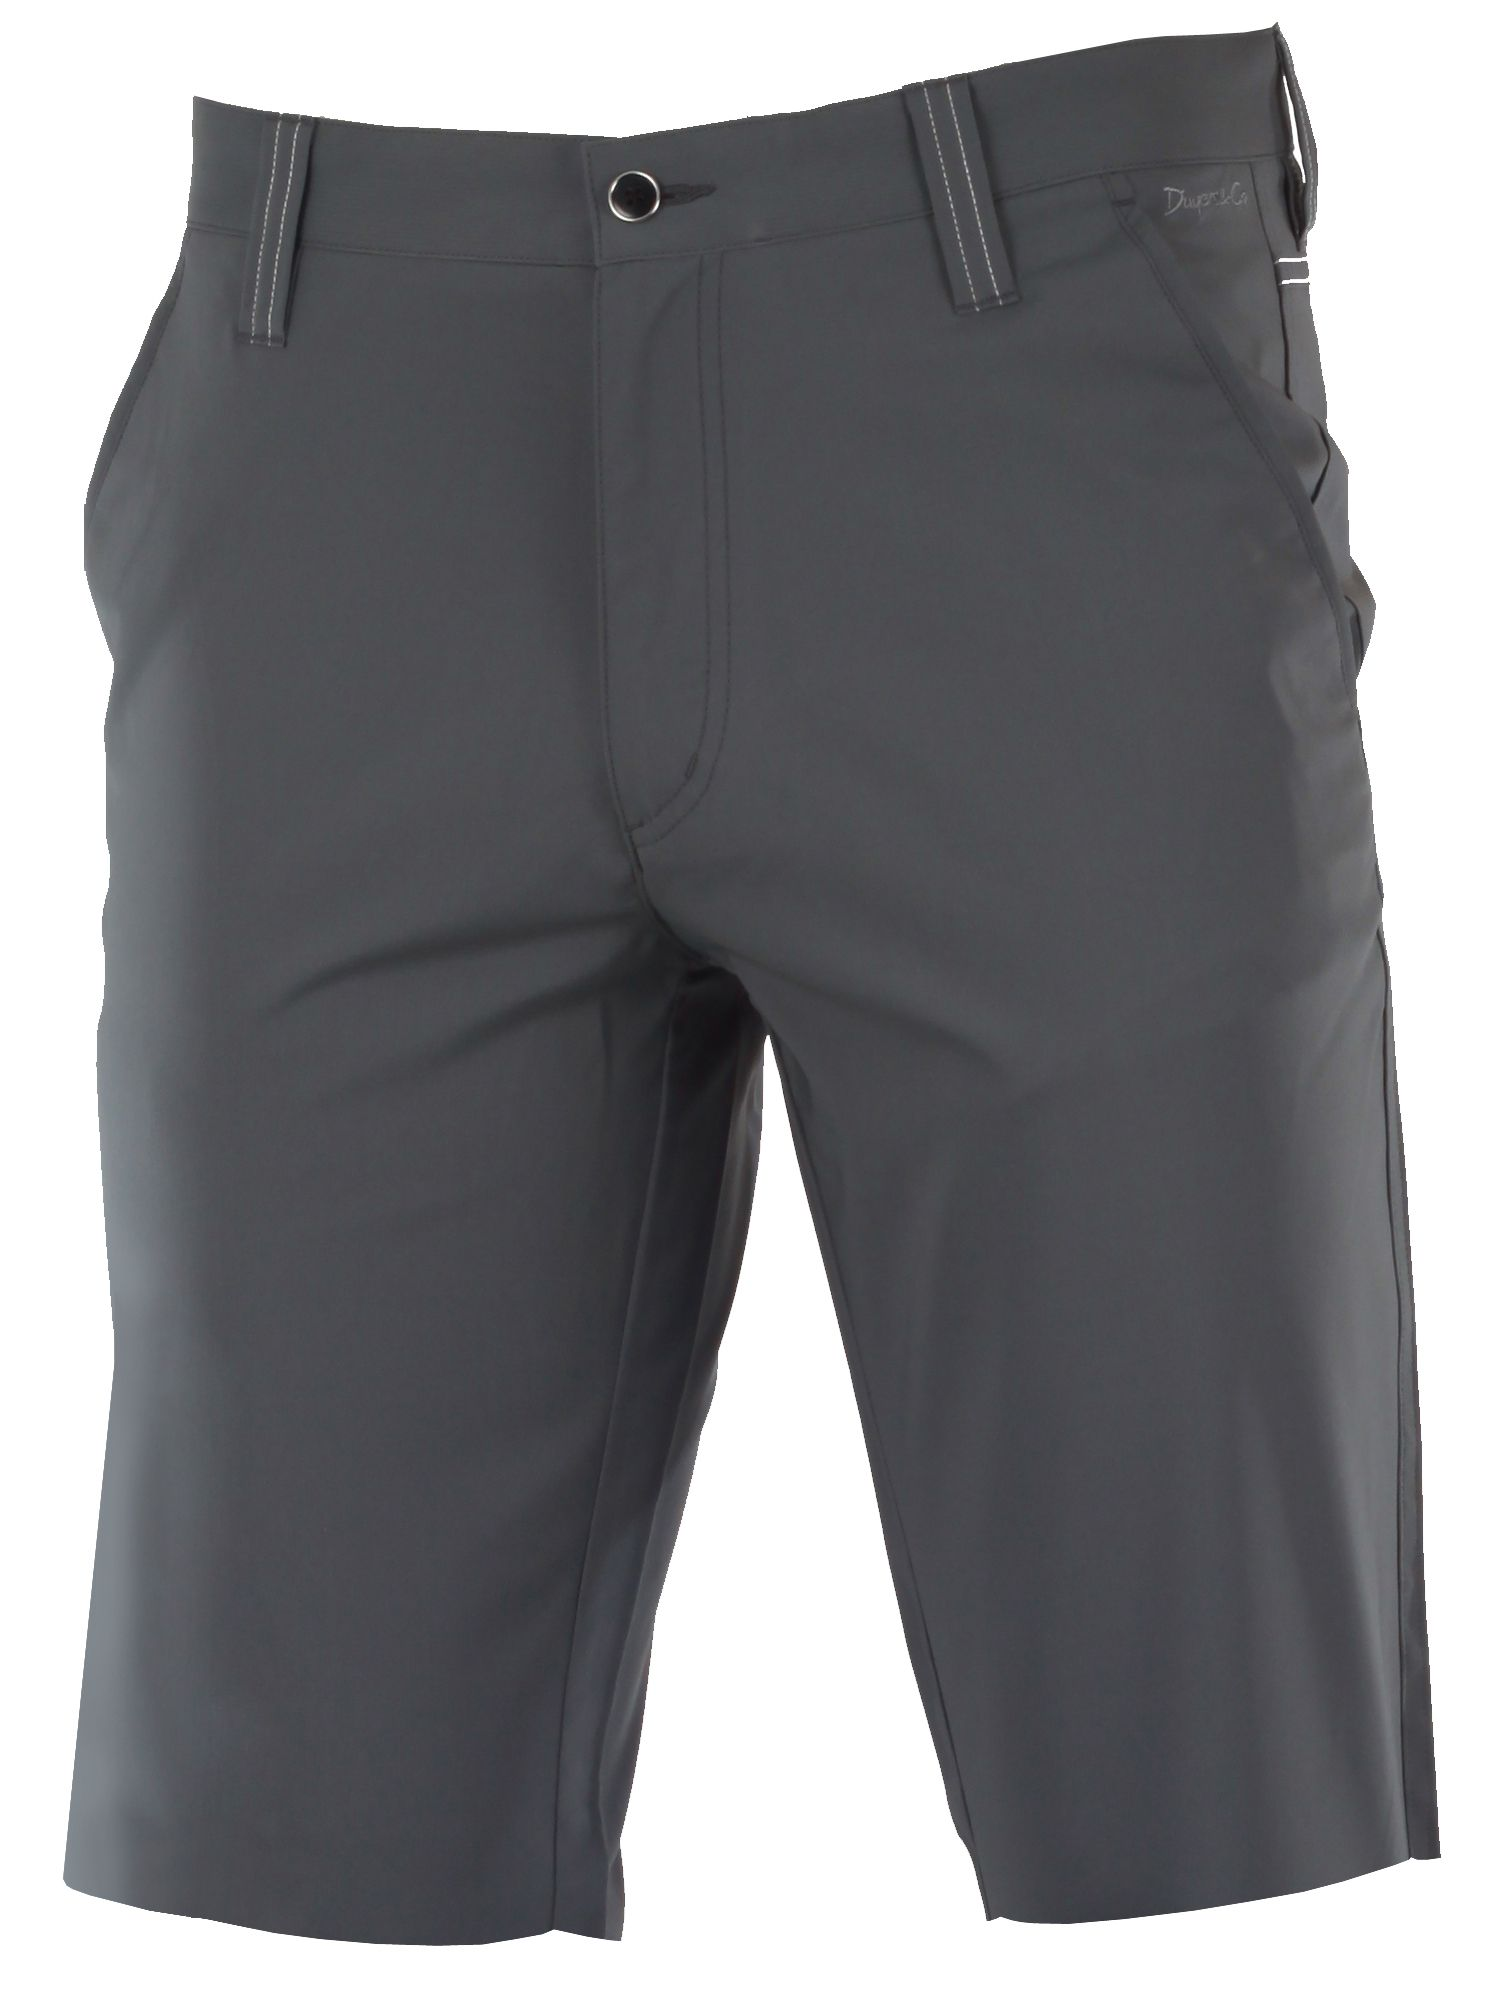 Dwyers and Co Men's Dwyers and Co Micro Tech 2.0 shorts, Steel